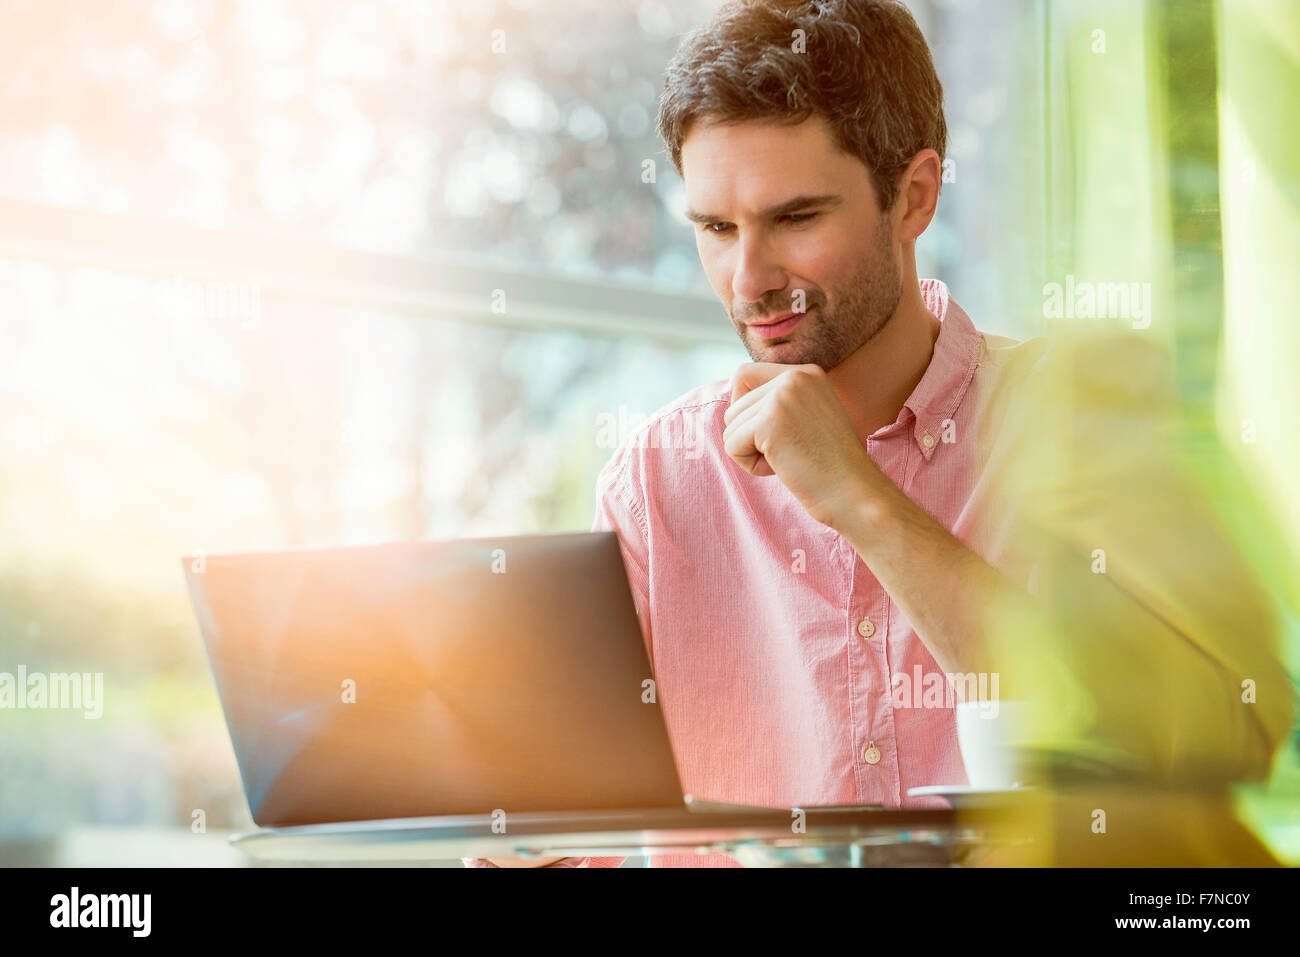 Man using laptop computer - Stock Image